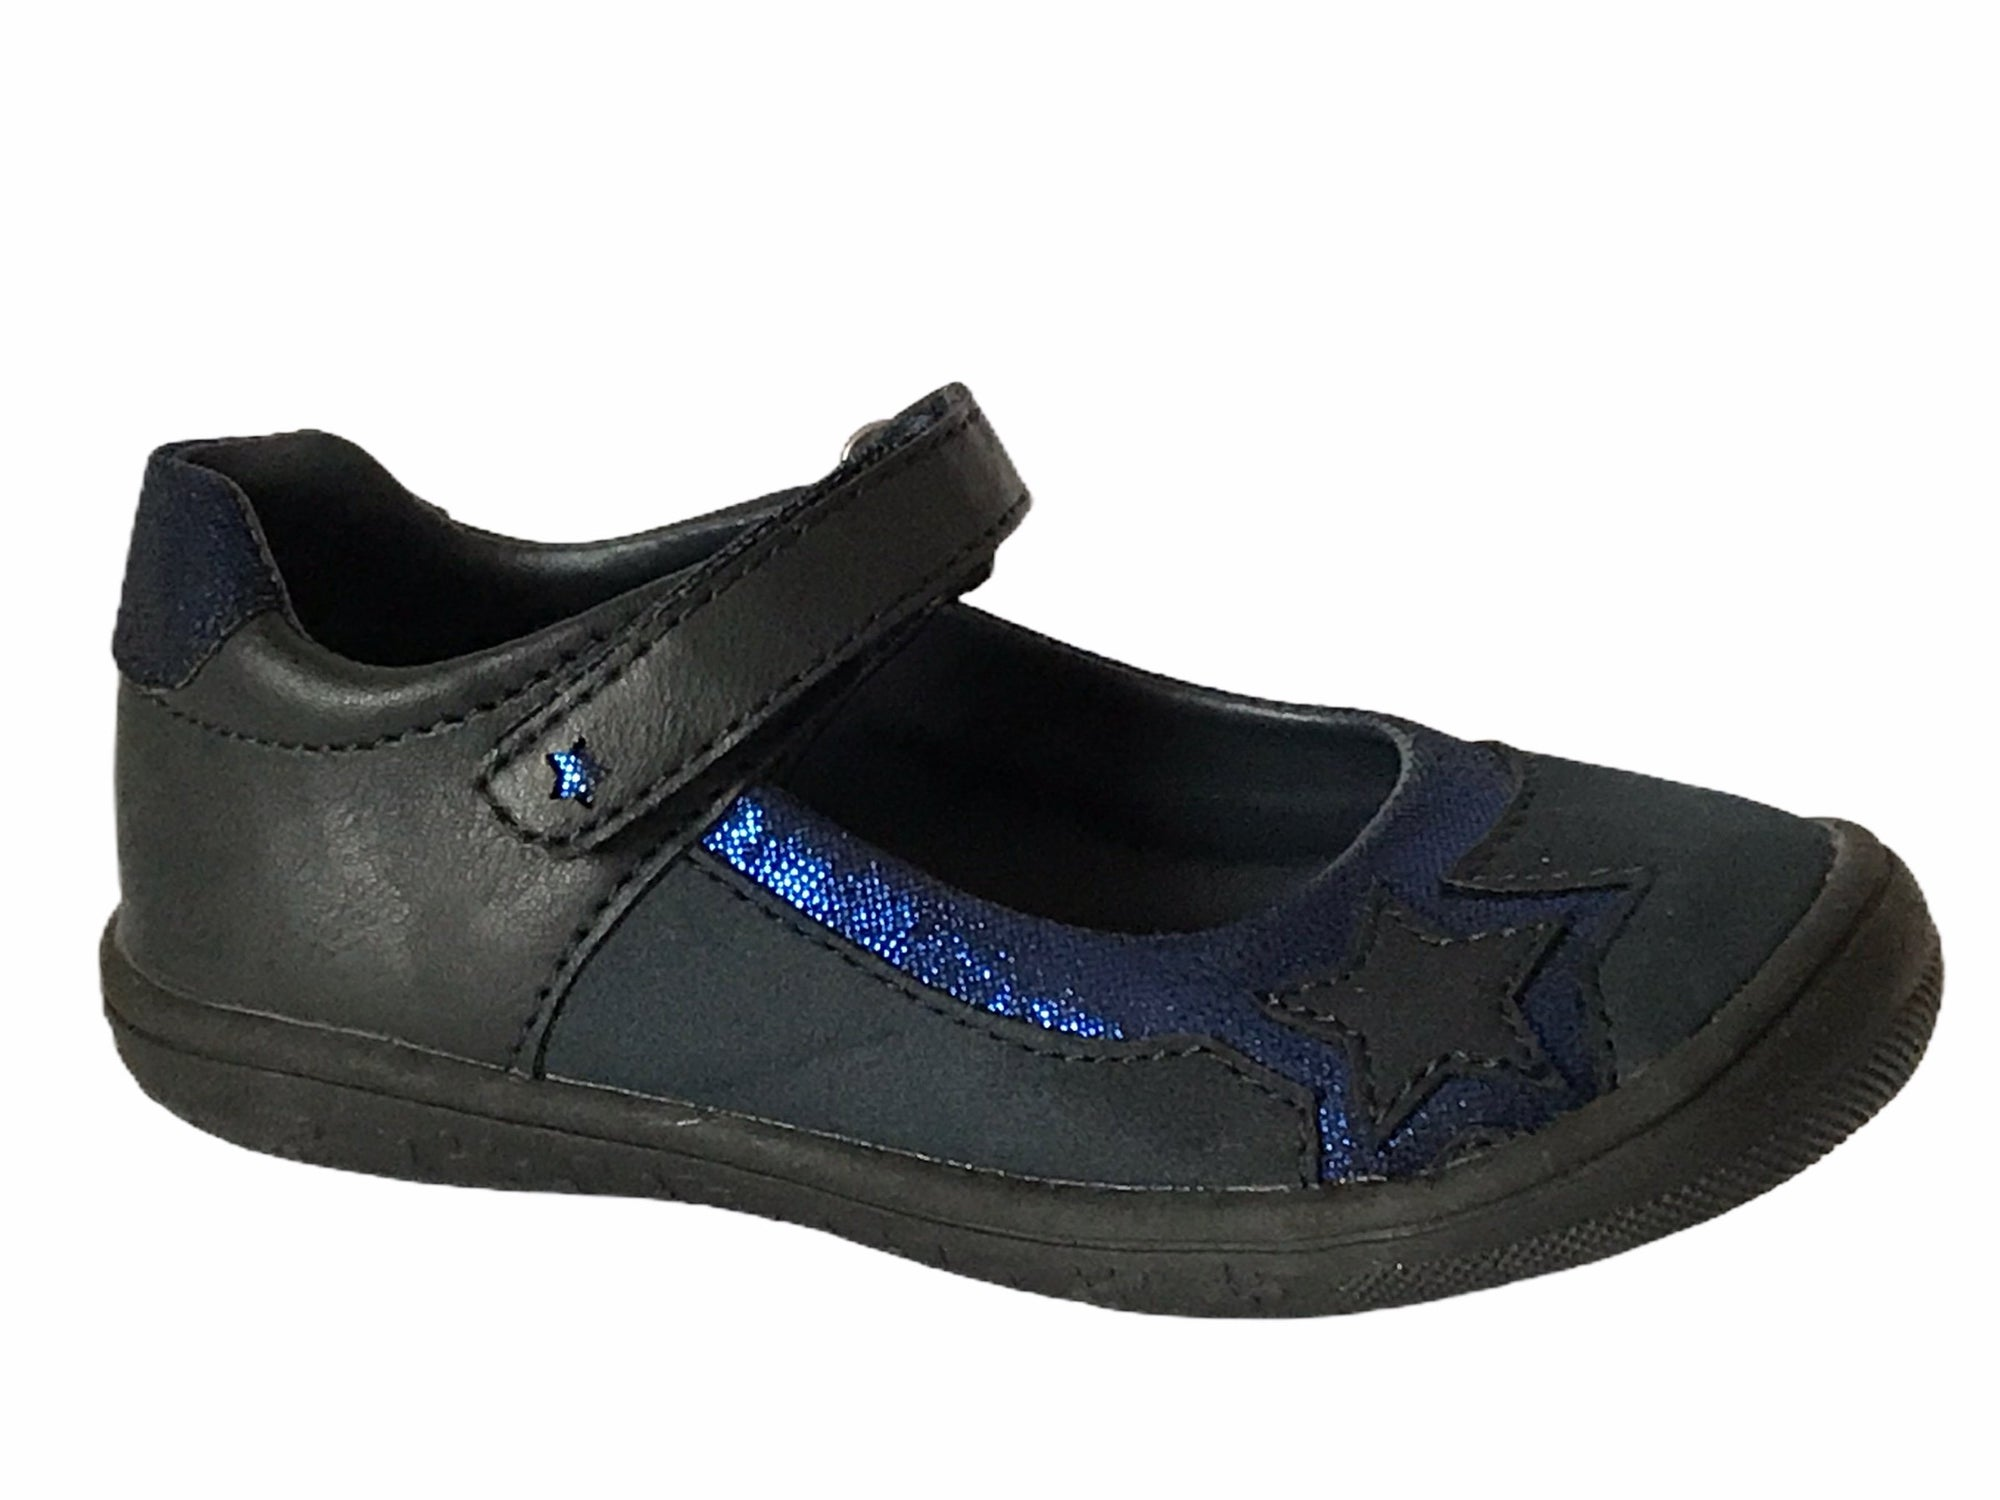 Bleufornce Girl Black & Blue Shoes